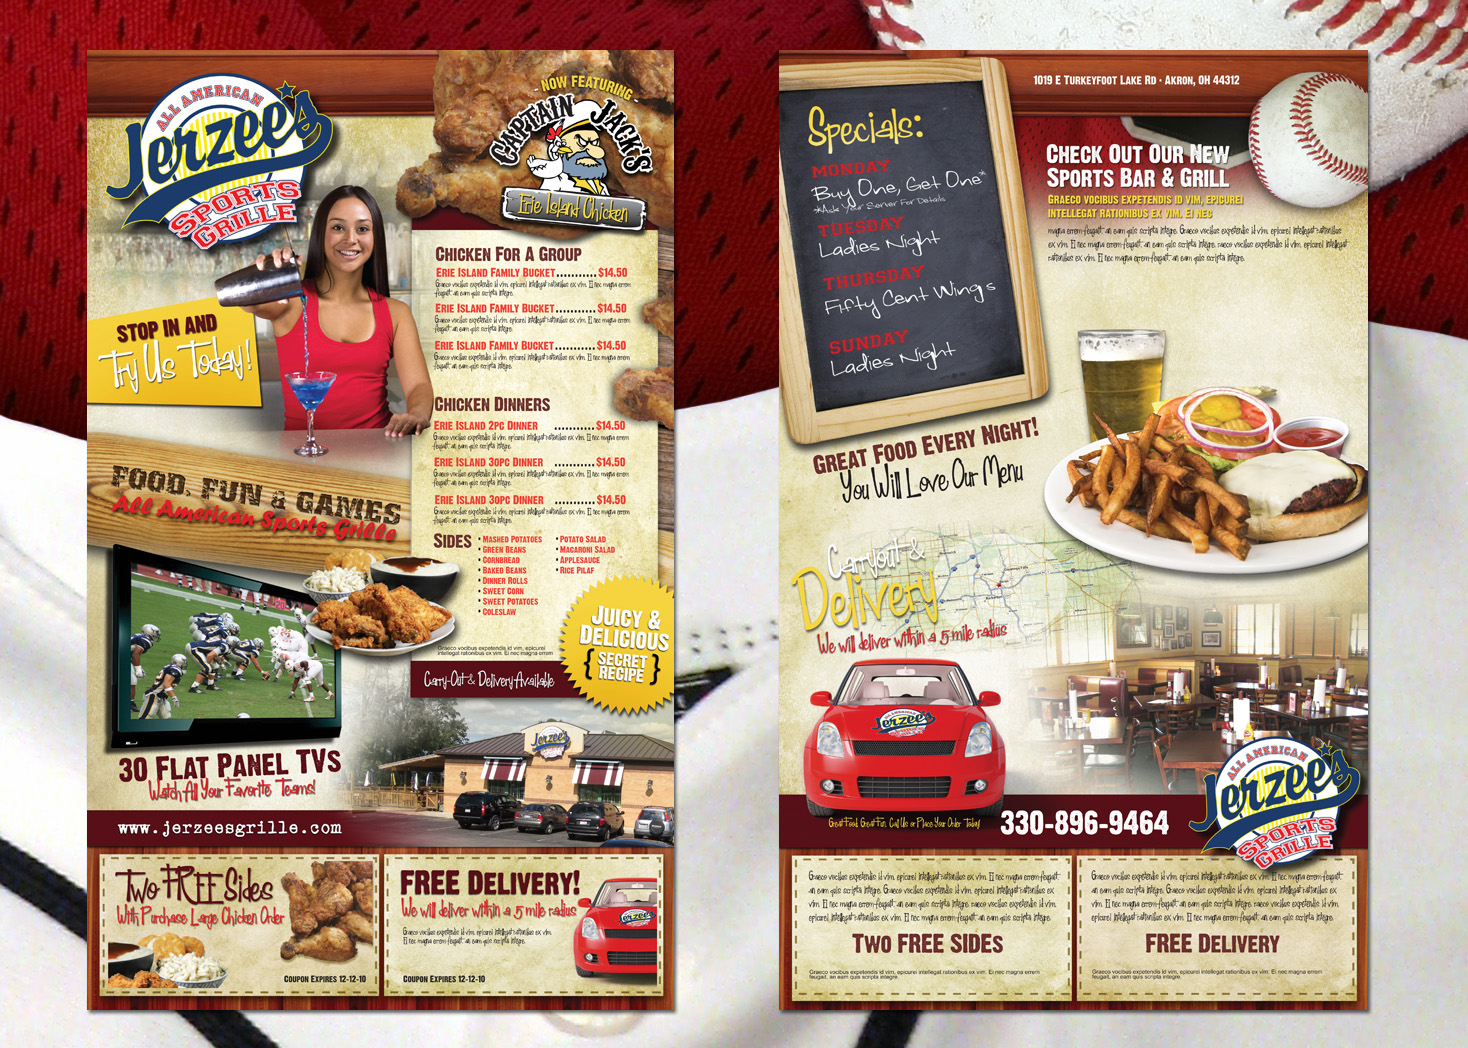 Jerzee's Sports Grille - Menu Design - Lehman Design